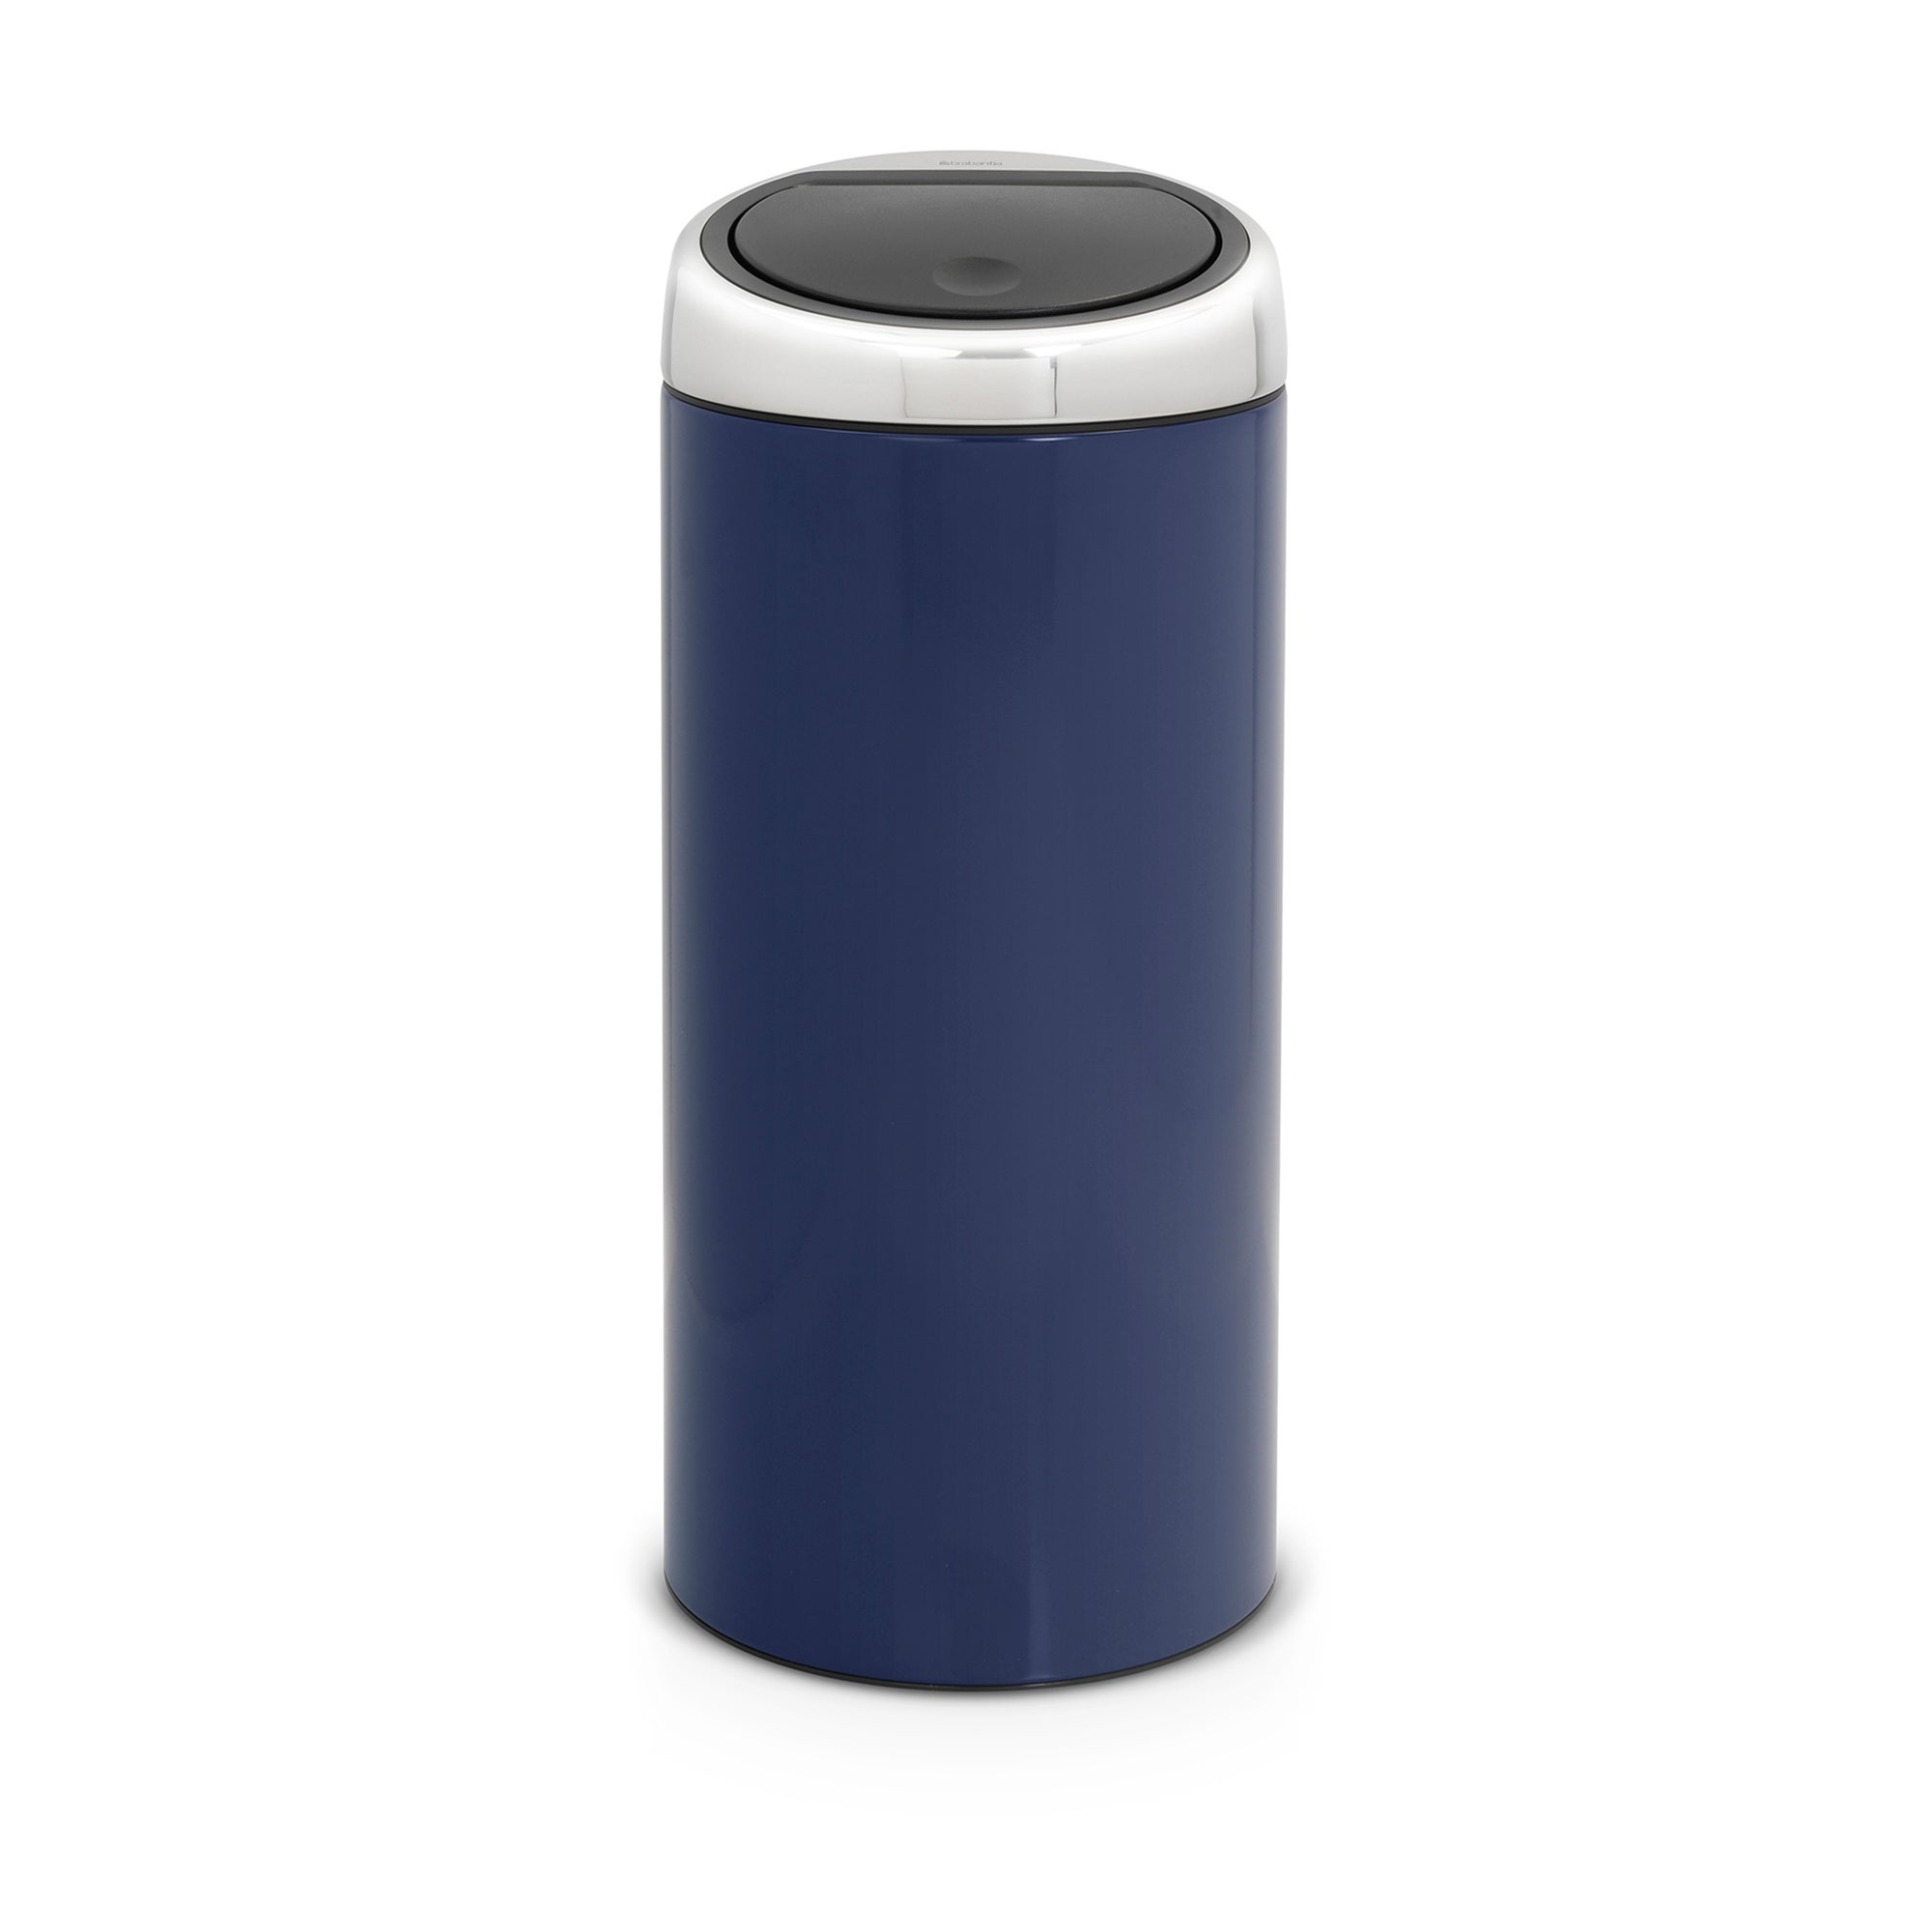 Brabantia Blue 30 Litre Lacquered Steel Touch Bin